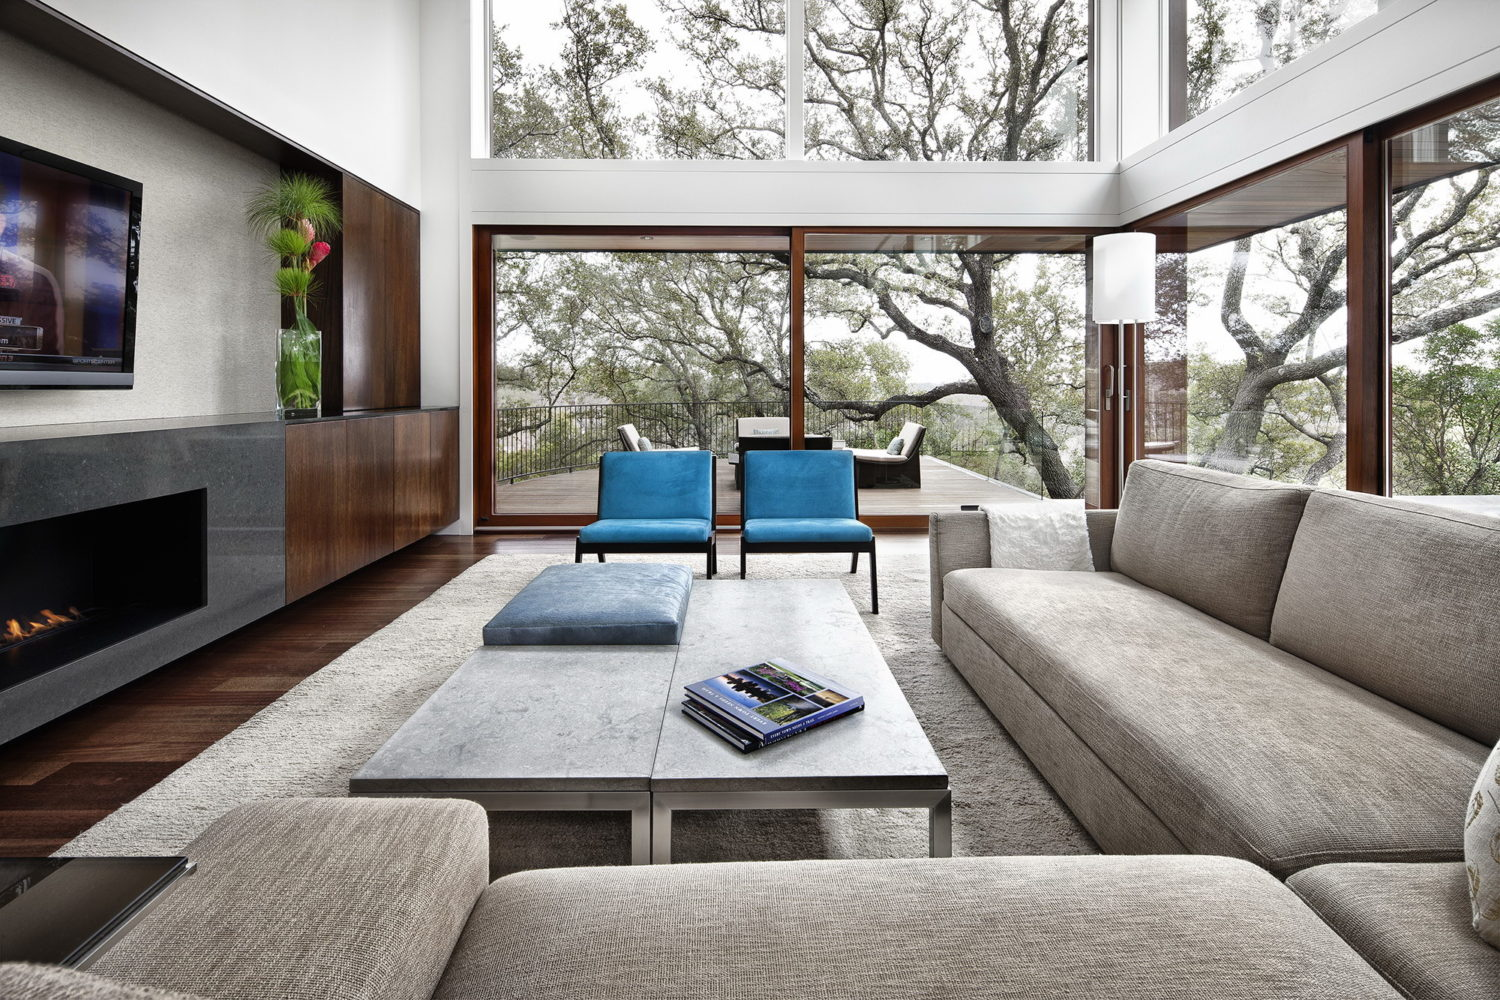 Tree House by Miró Rivera Architects